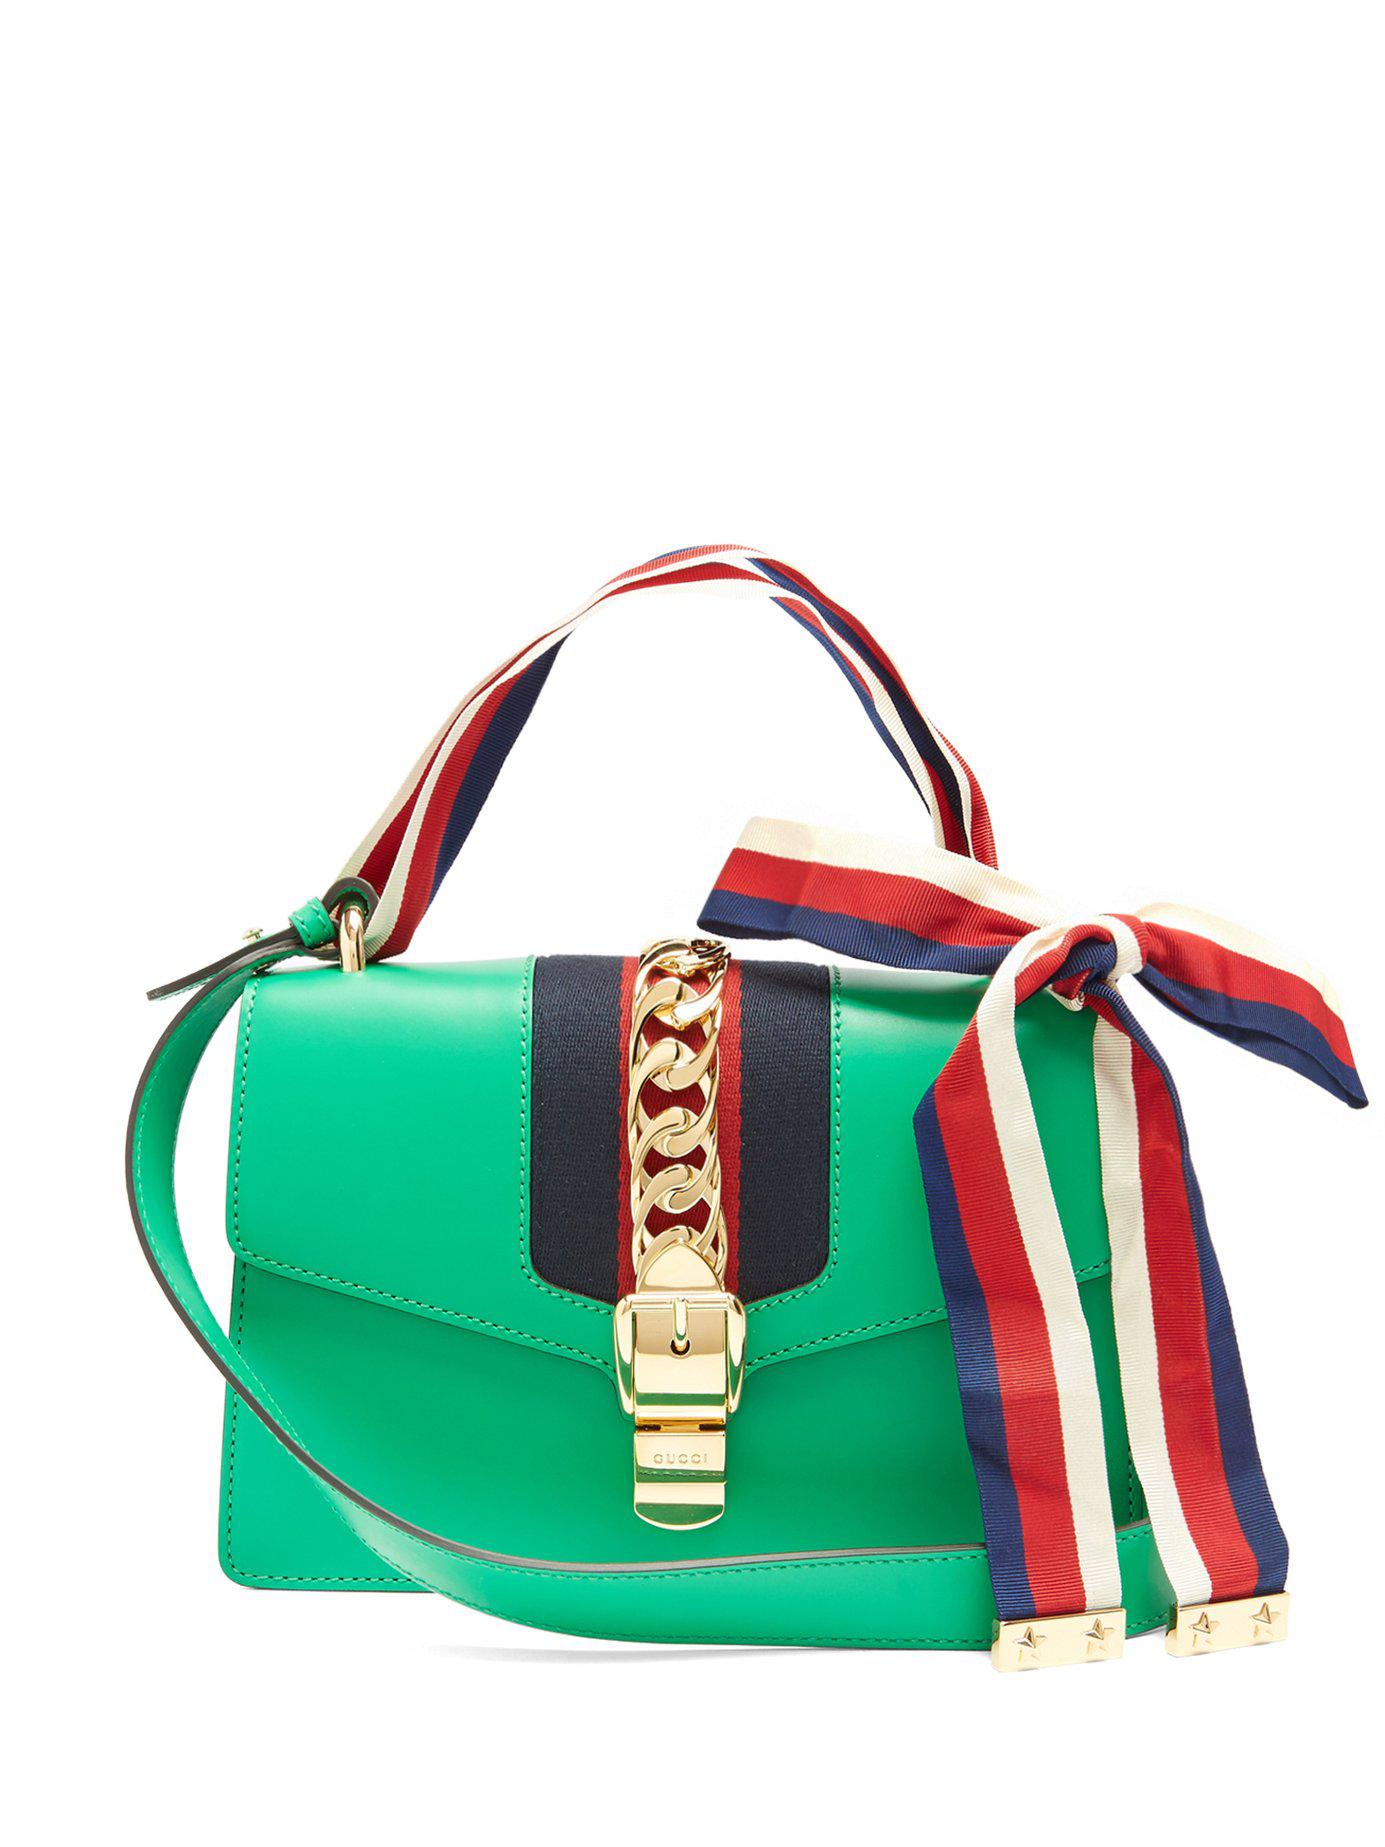 7c1b54958f92 Gucci Sylvie Leather Shoulder Bag in Green - Lyst